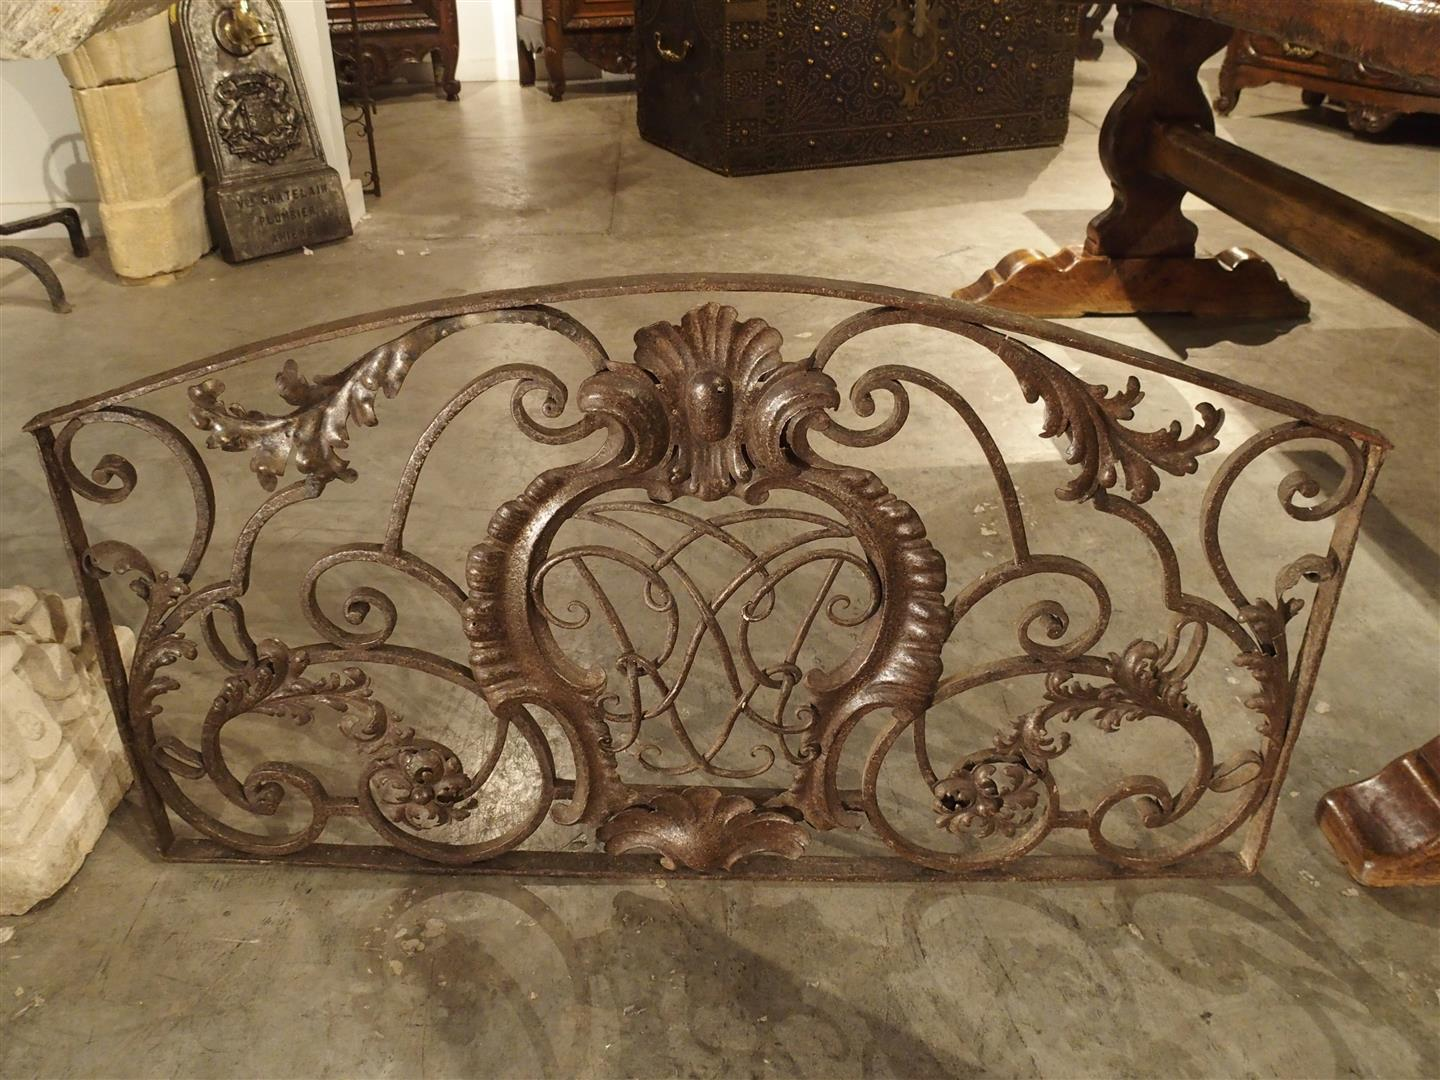 18th Century Forged Iron Gate from Bordeaux, France